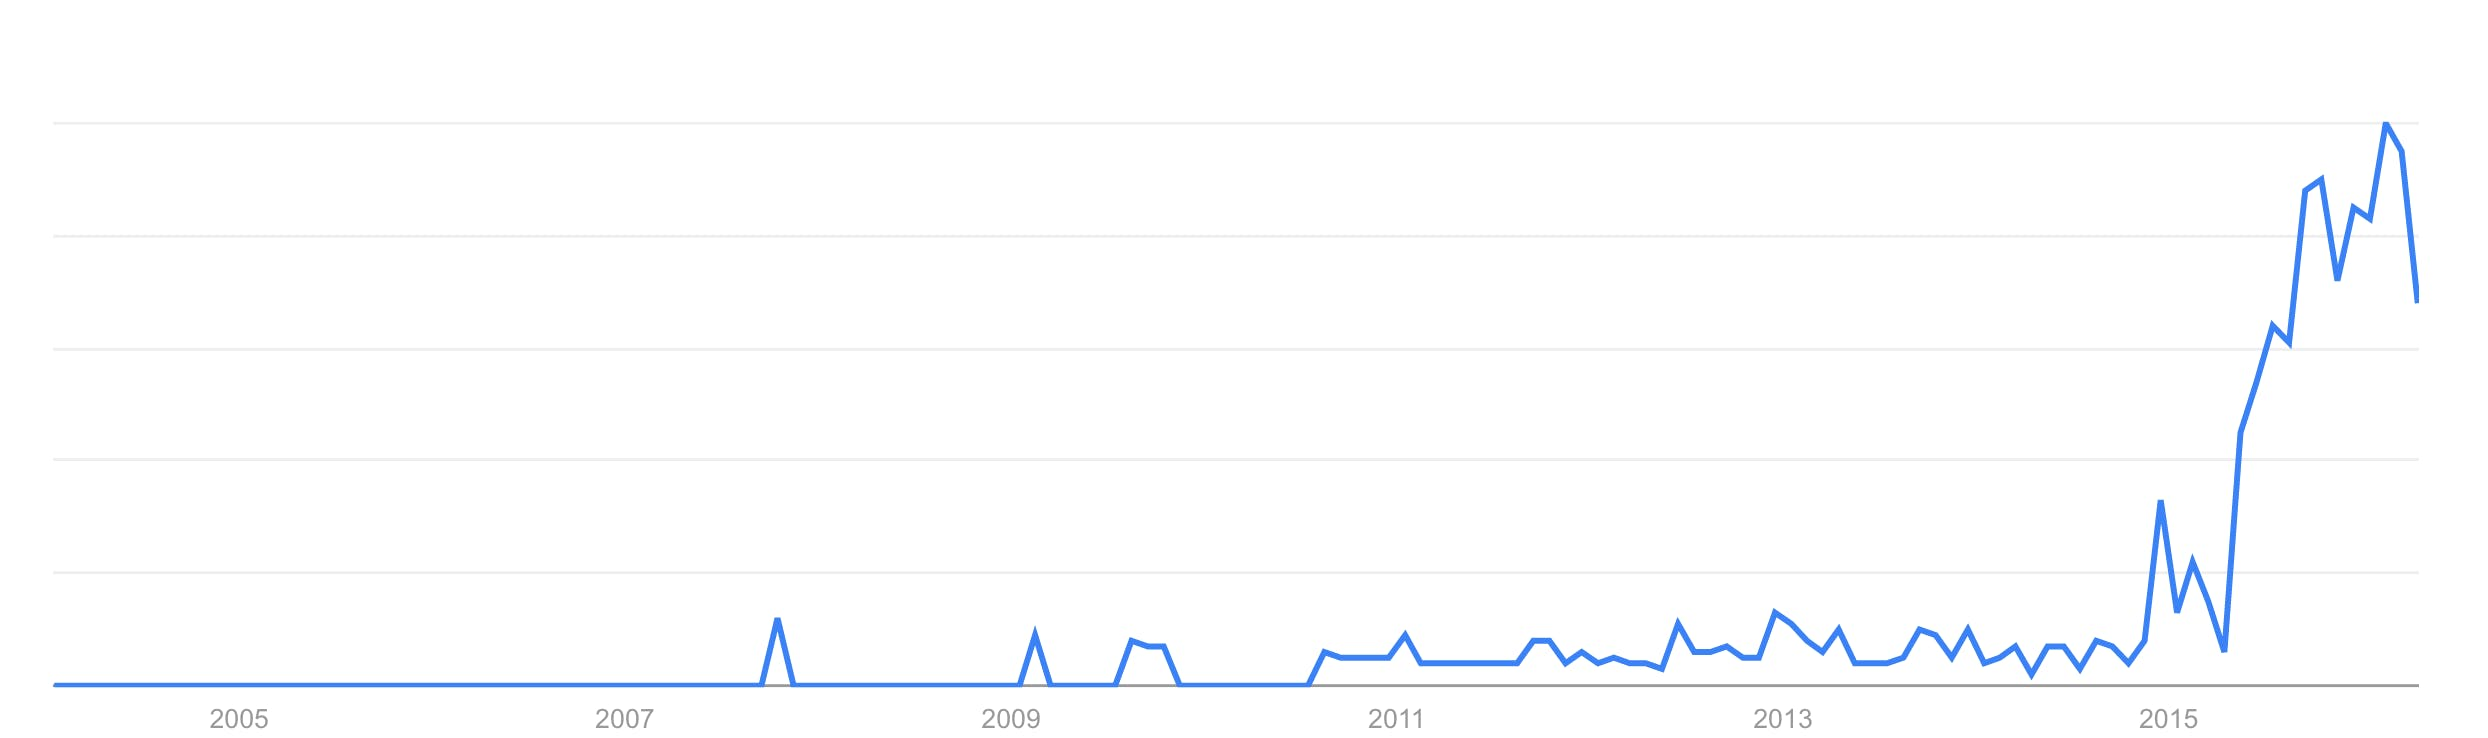 quiver-trend.png